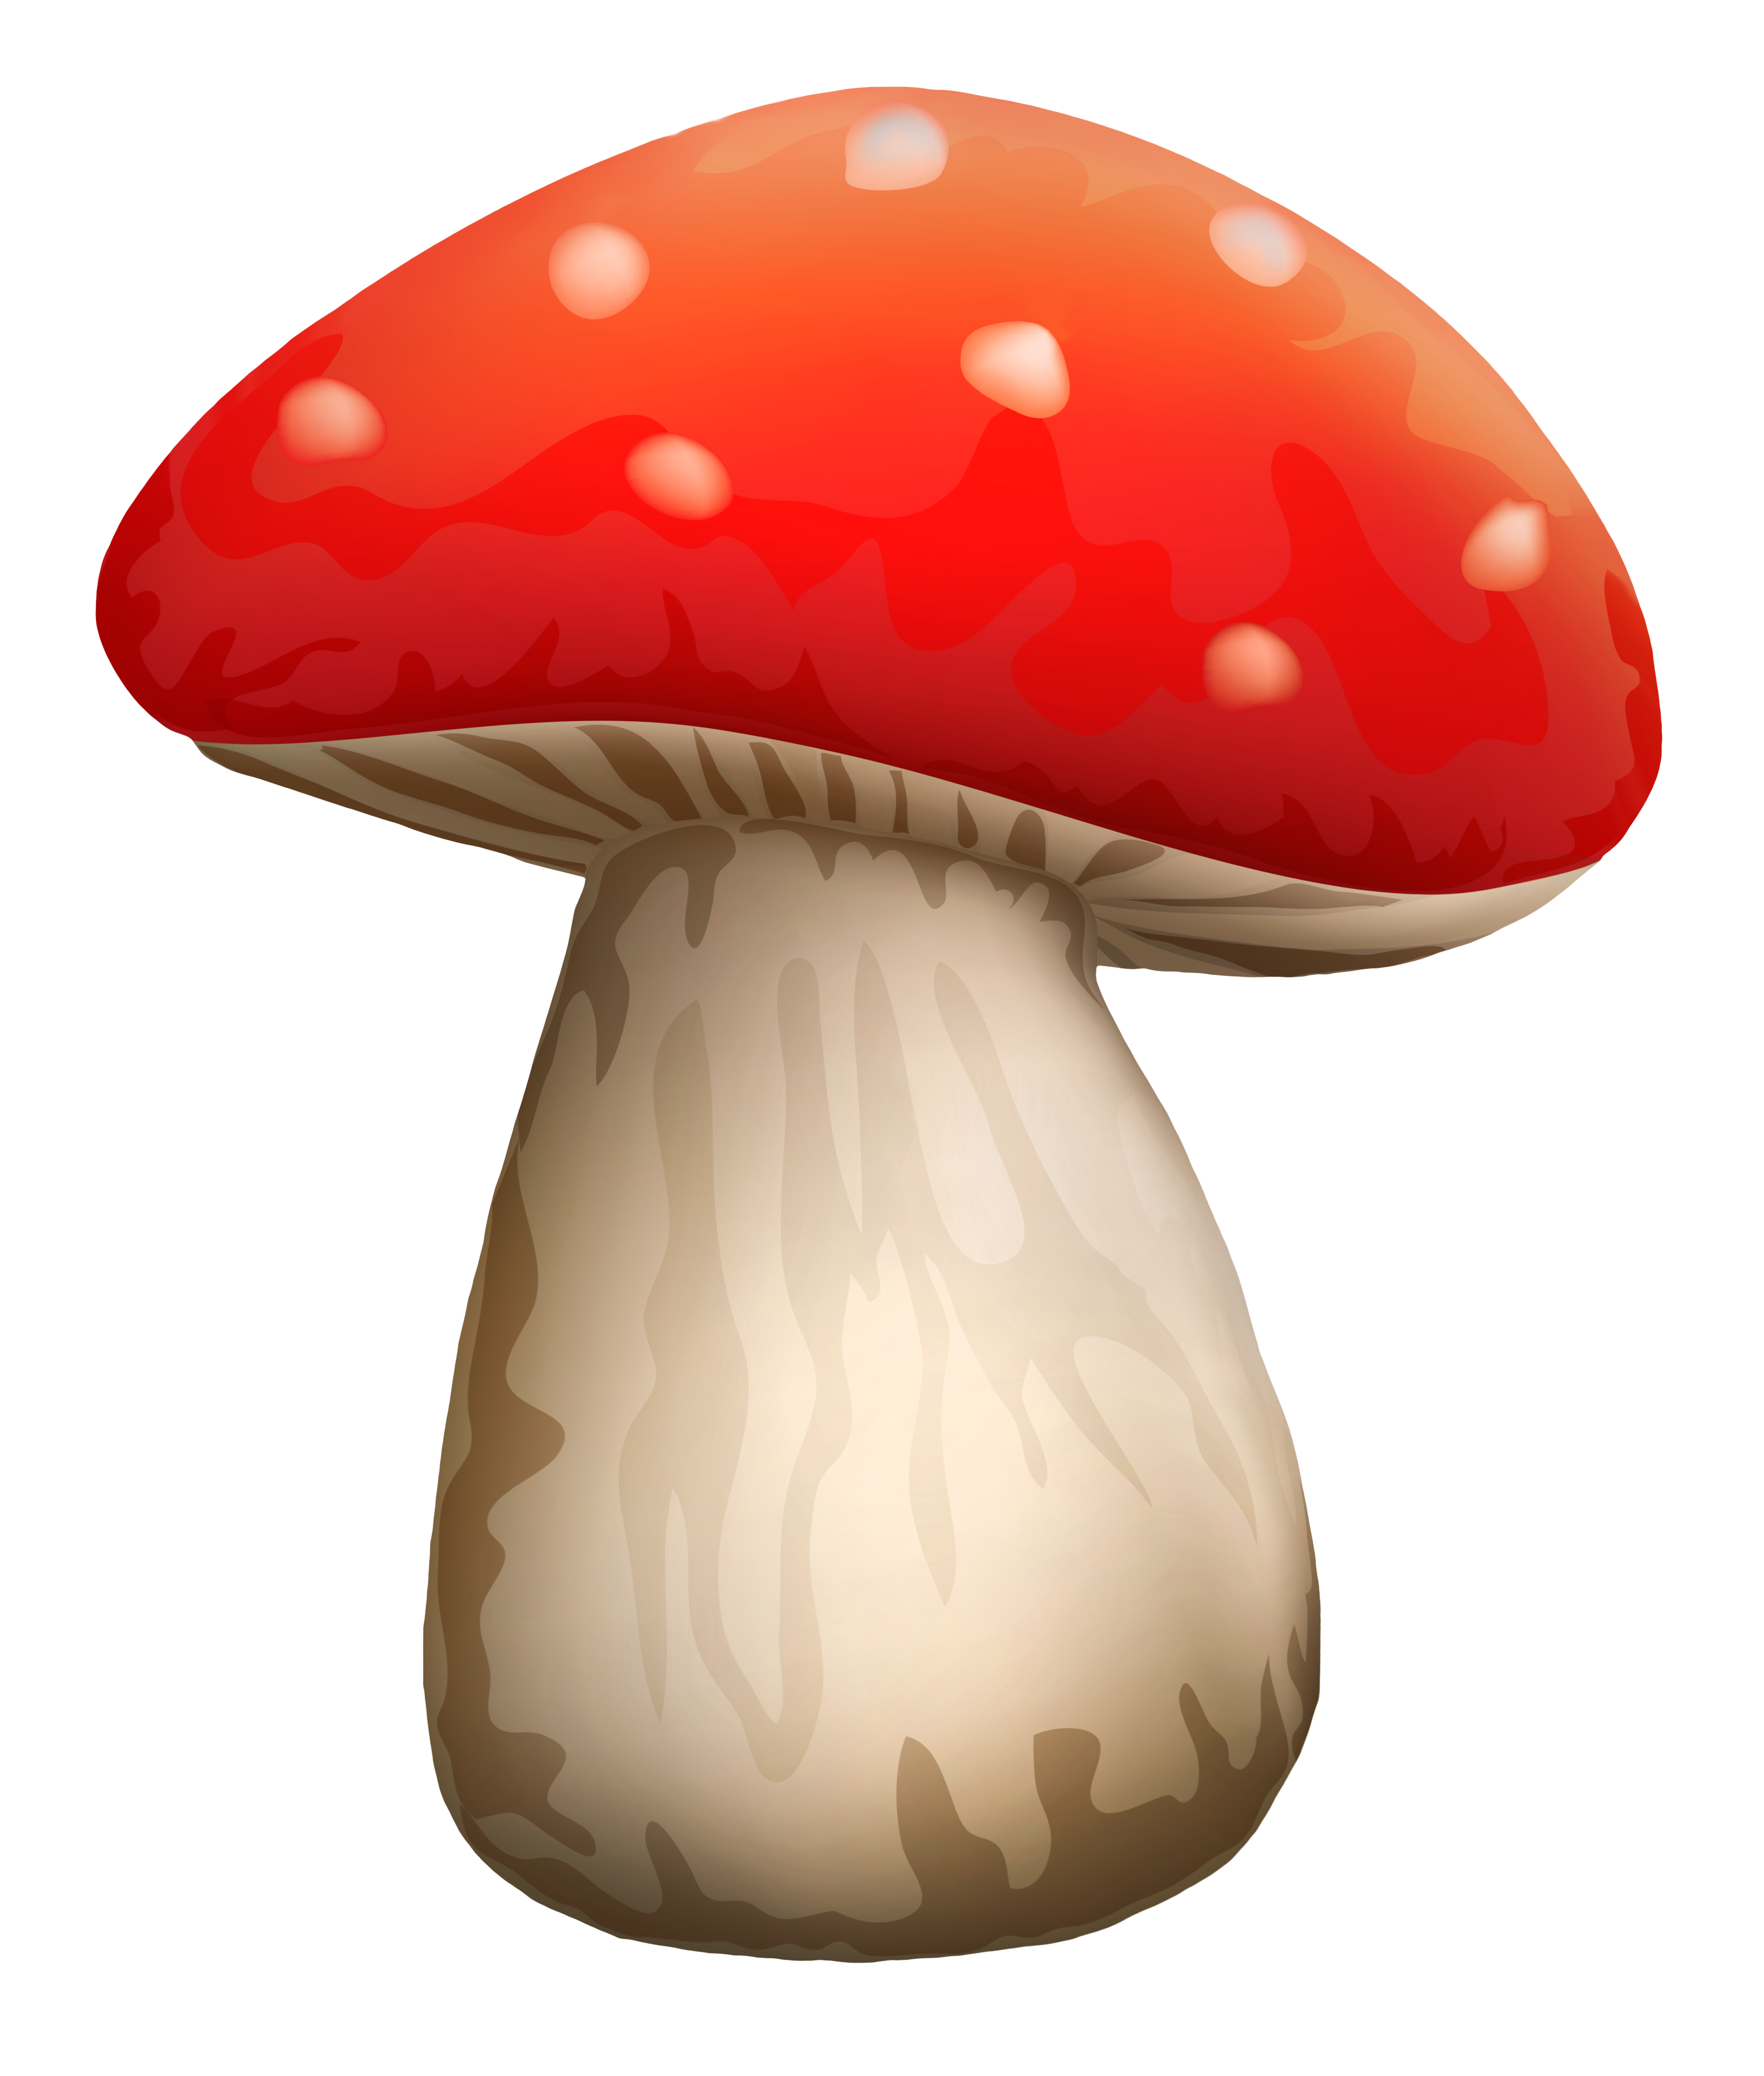 Poisonous Red Mushroom With White Dots PNG Clipart.